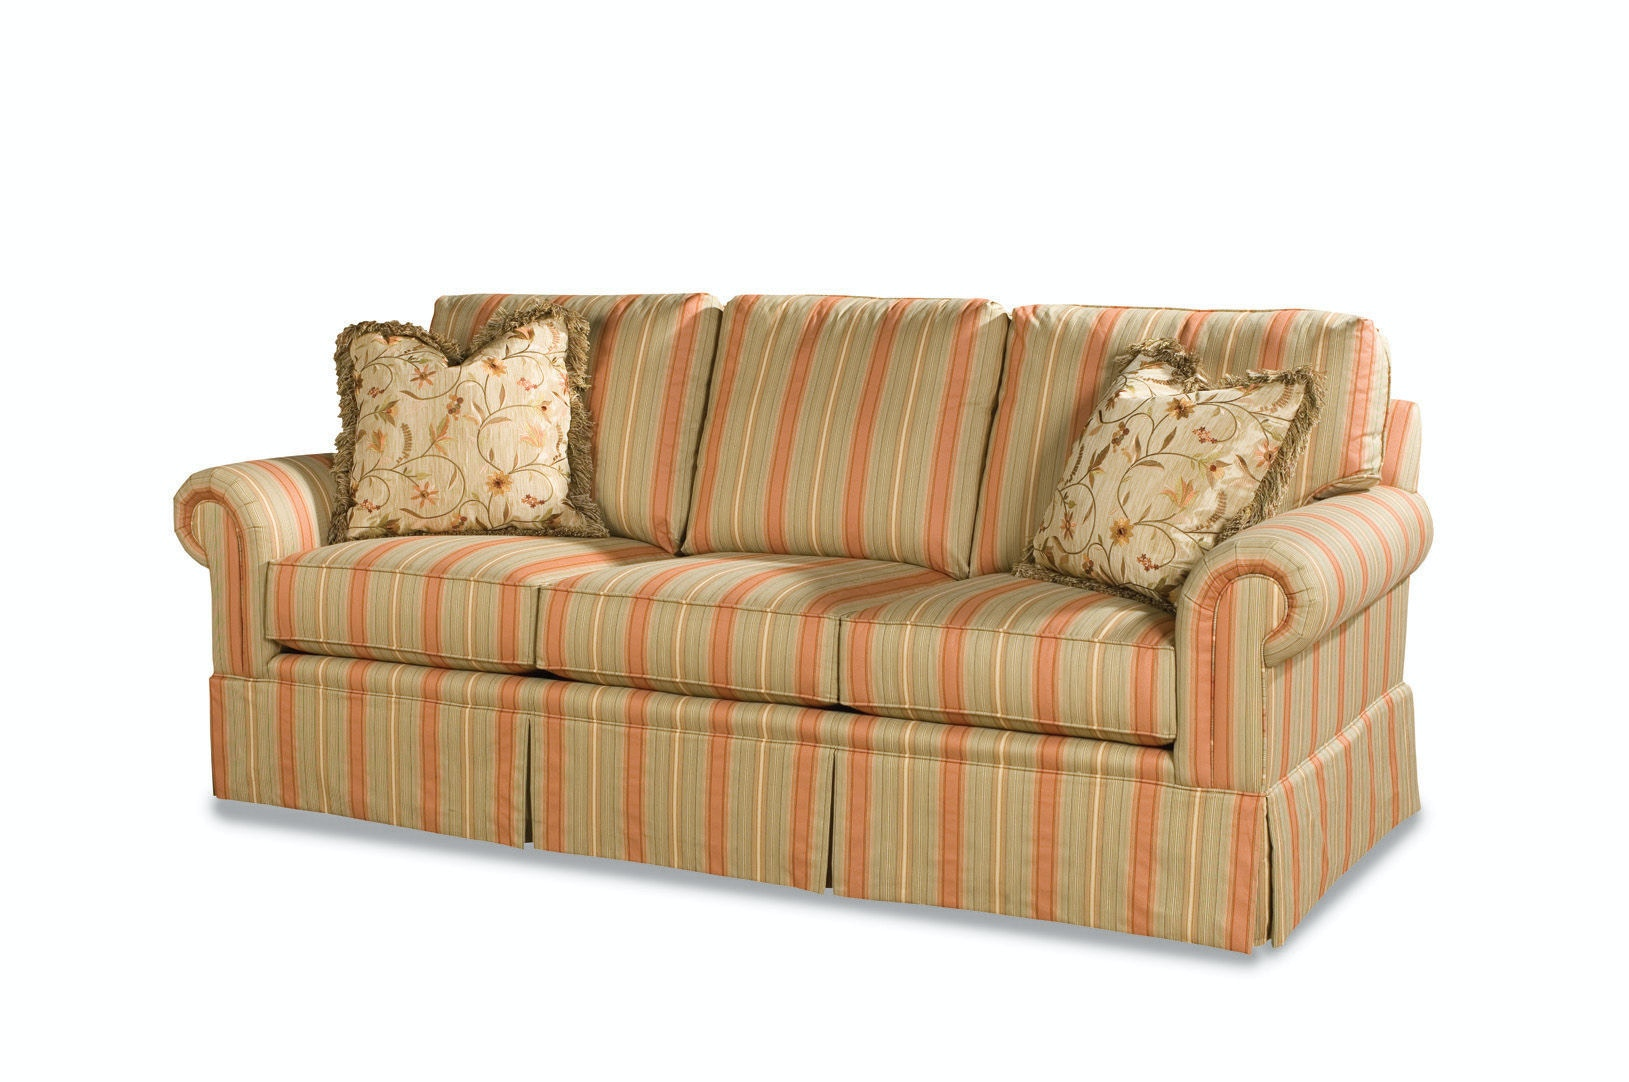 Huntington House Sofa 2053 20